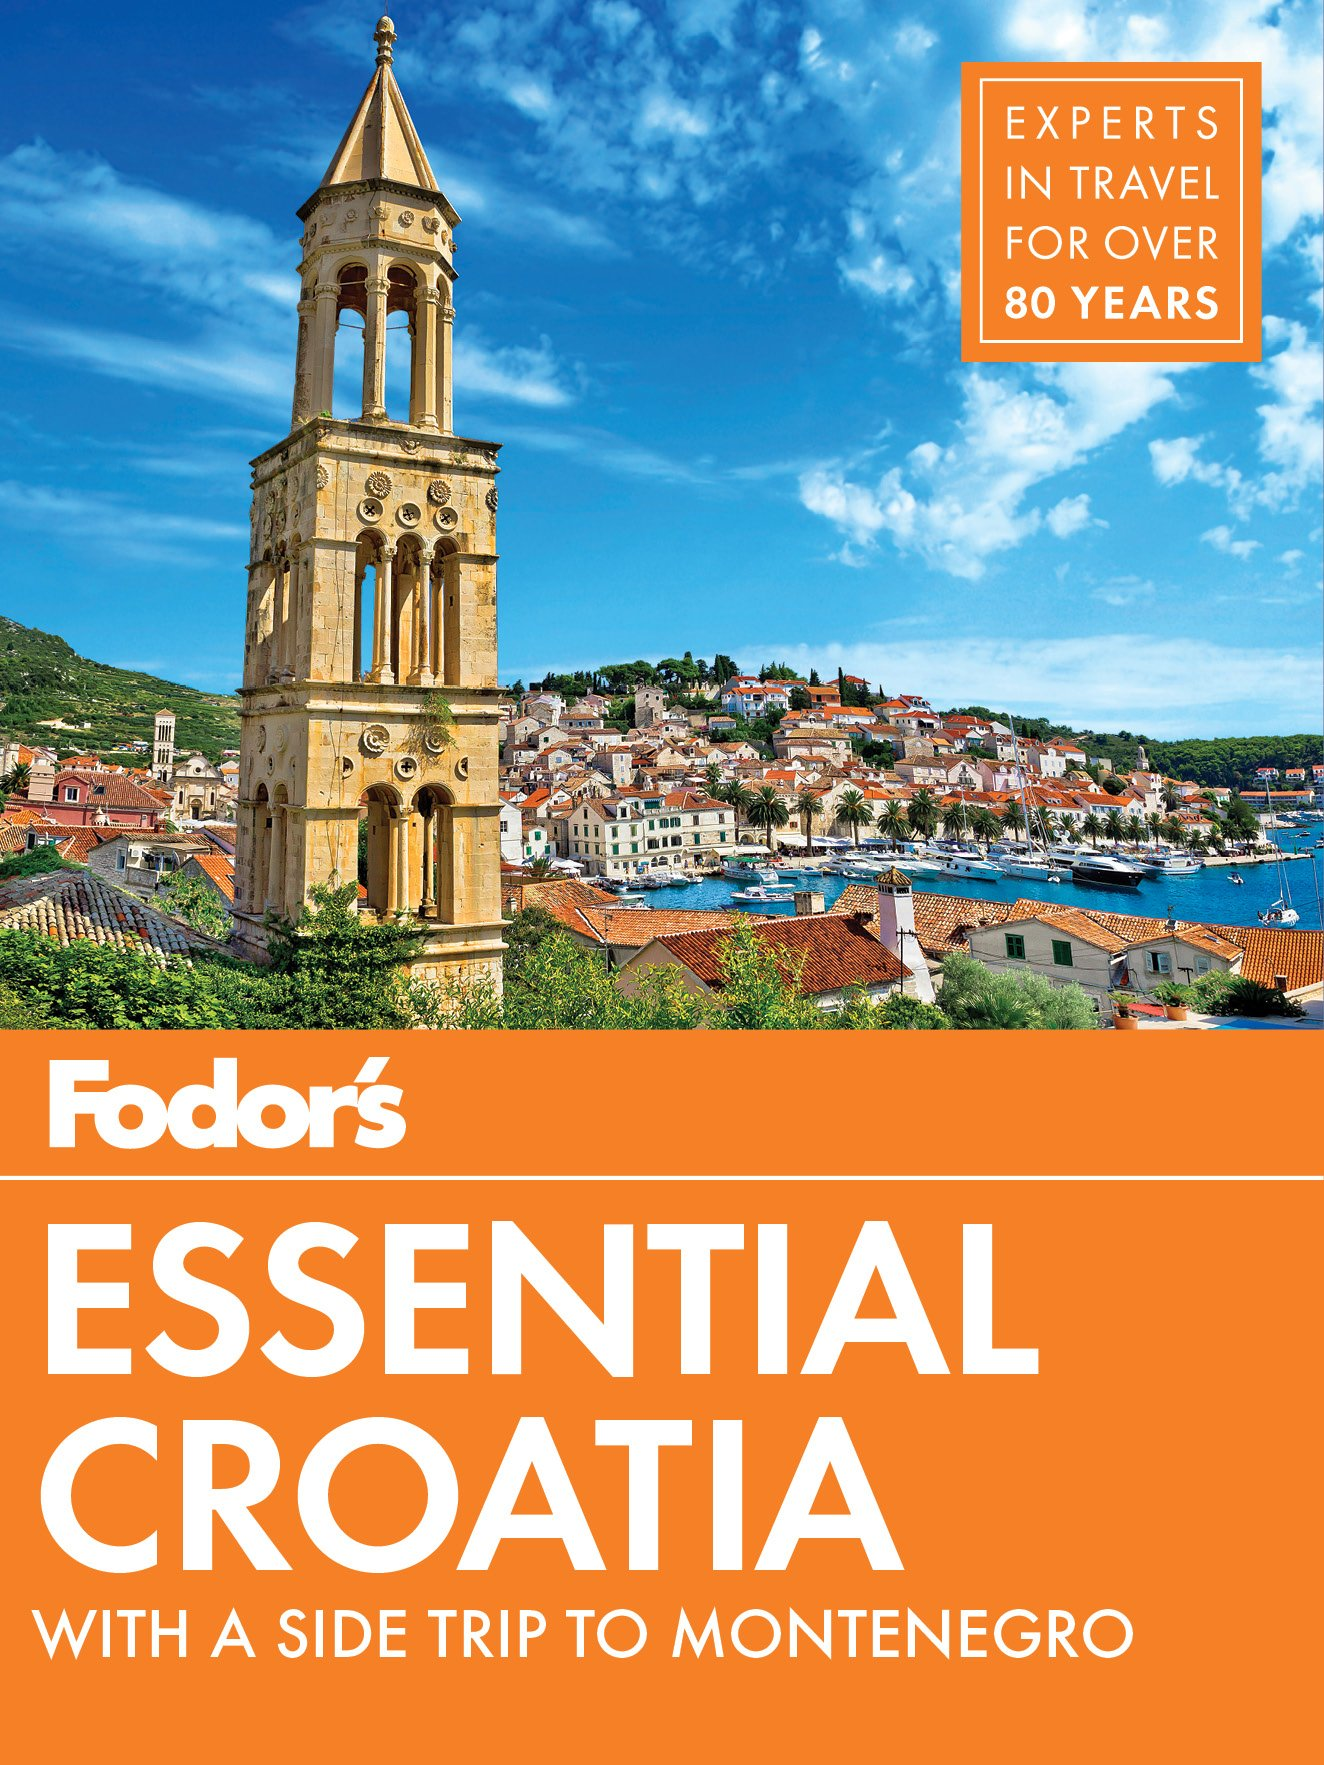 Download Fodor's Essential Croatia: with a Side Trip to Montenegro (Travel Guide) ePub fb2 book